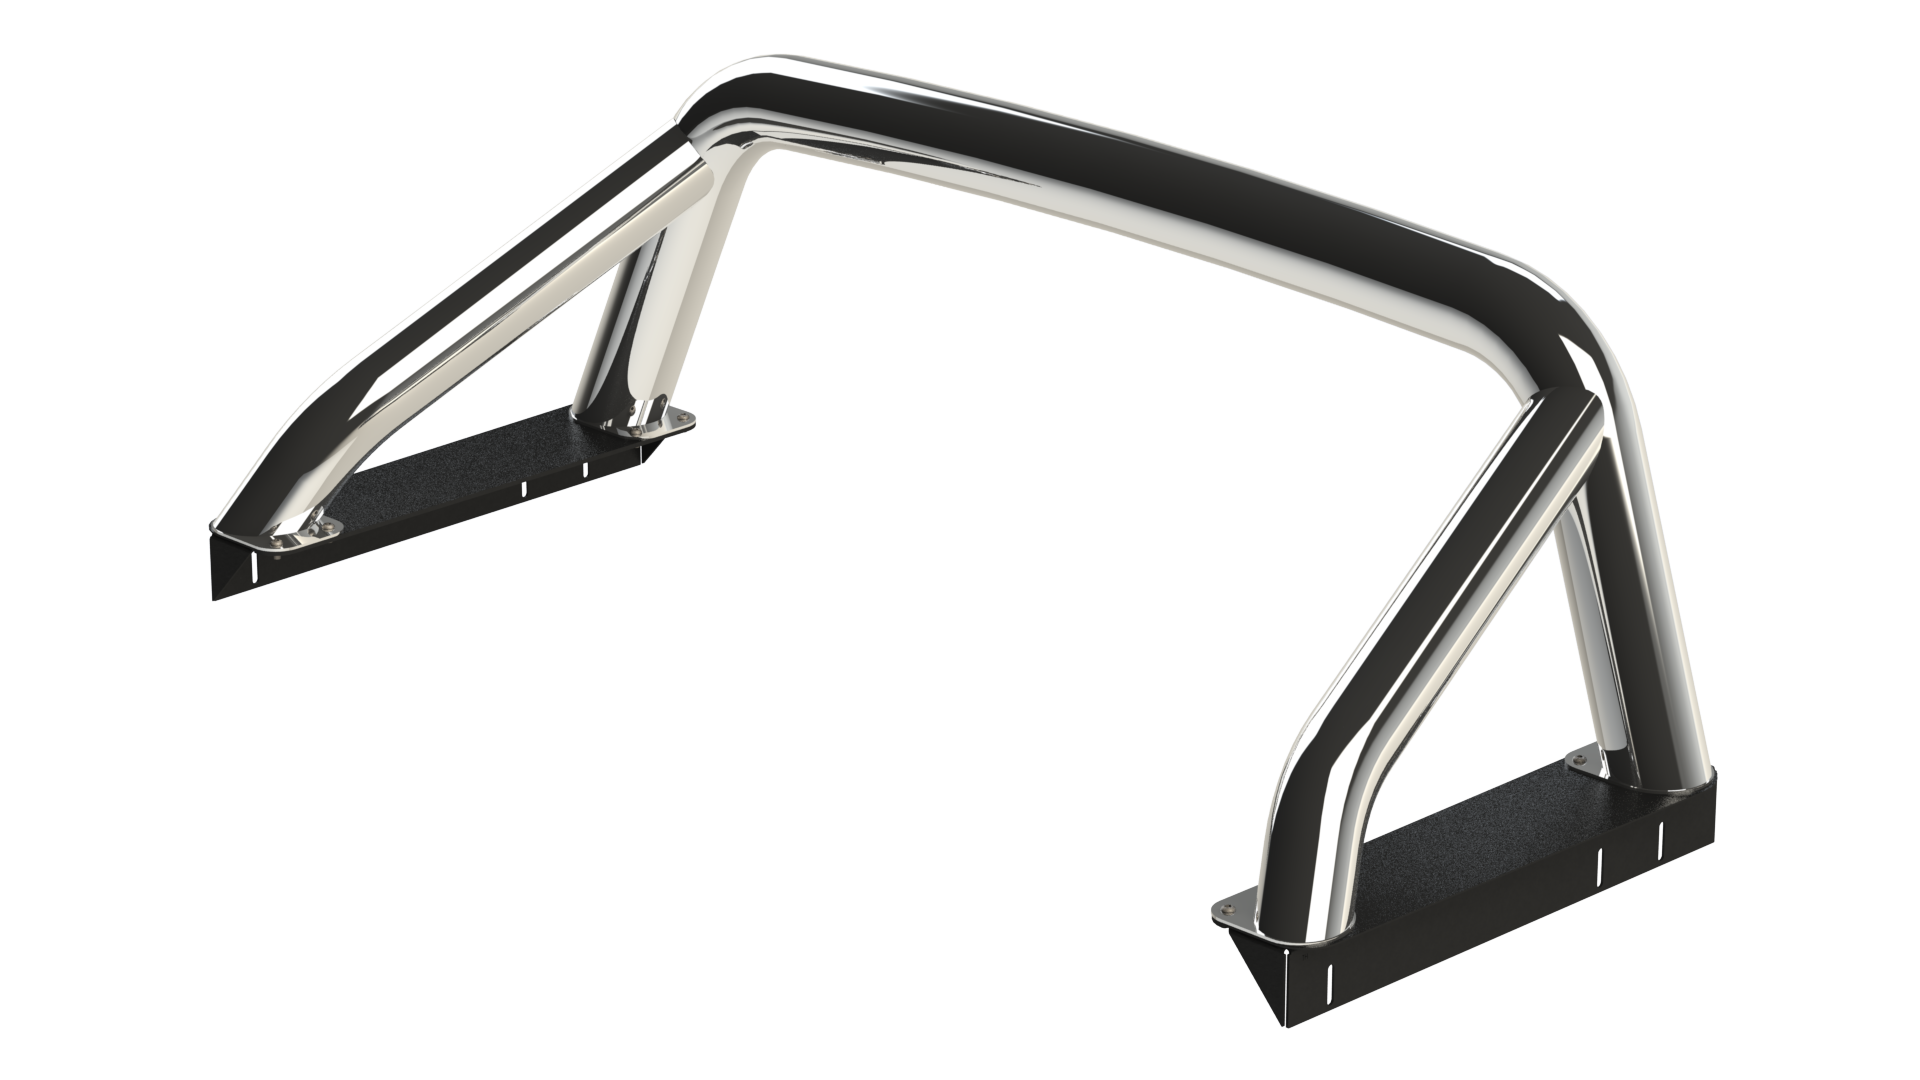 Utemaster_Hiiux 100mm Sports Bars